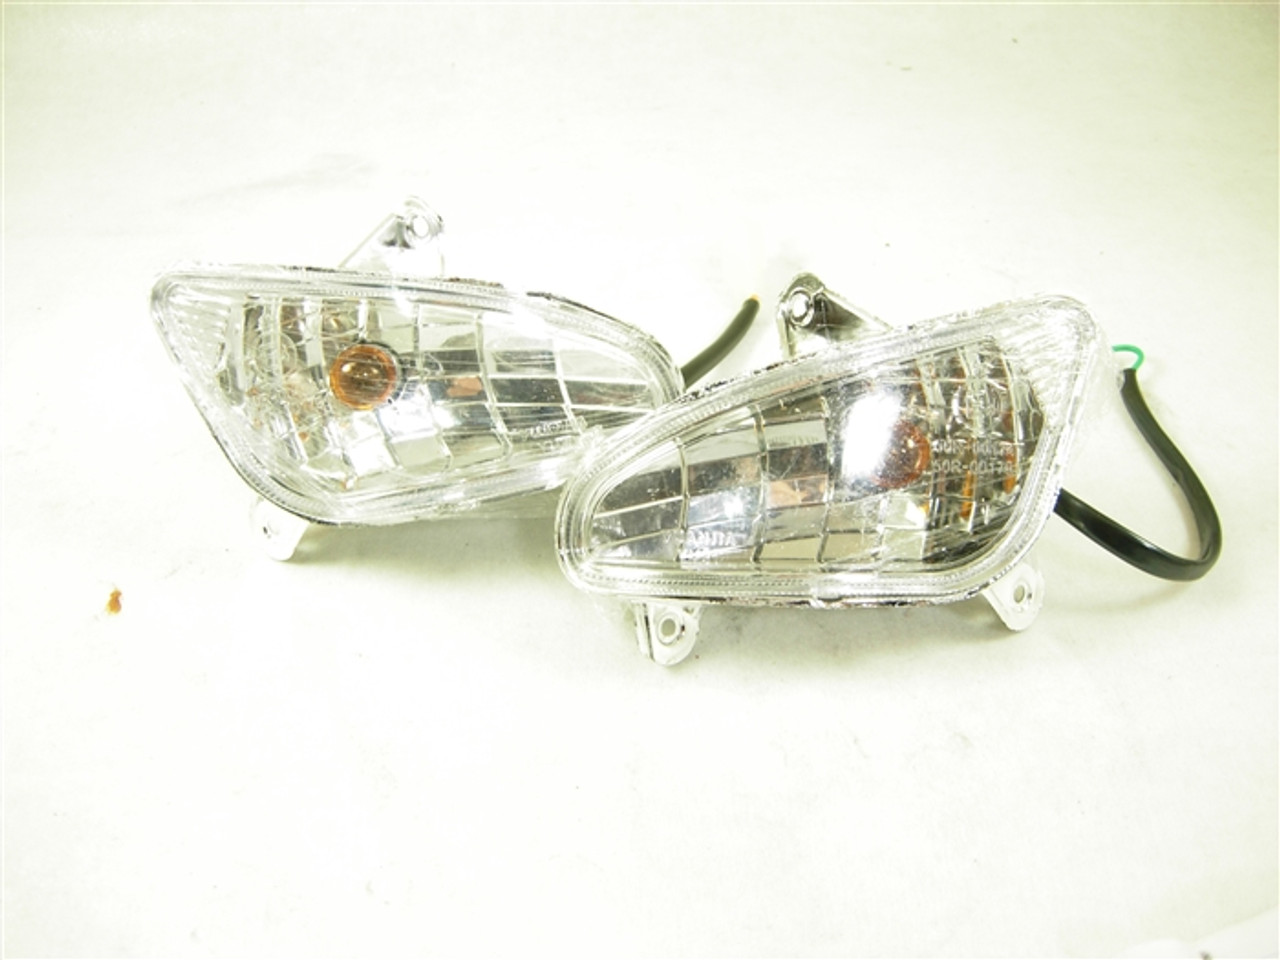 SIGNAL LIGHT REAR SET 10747-A42-9